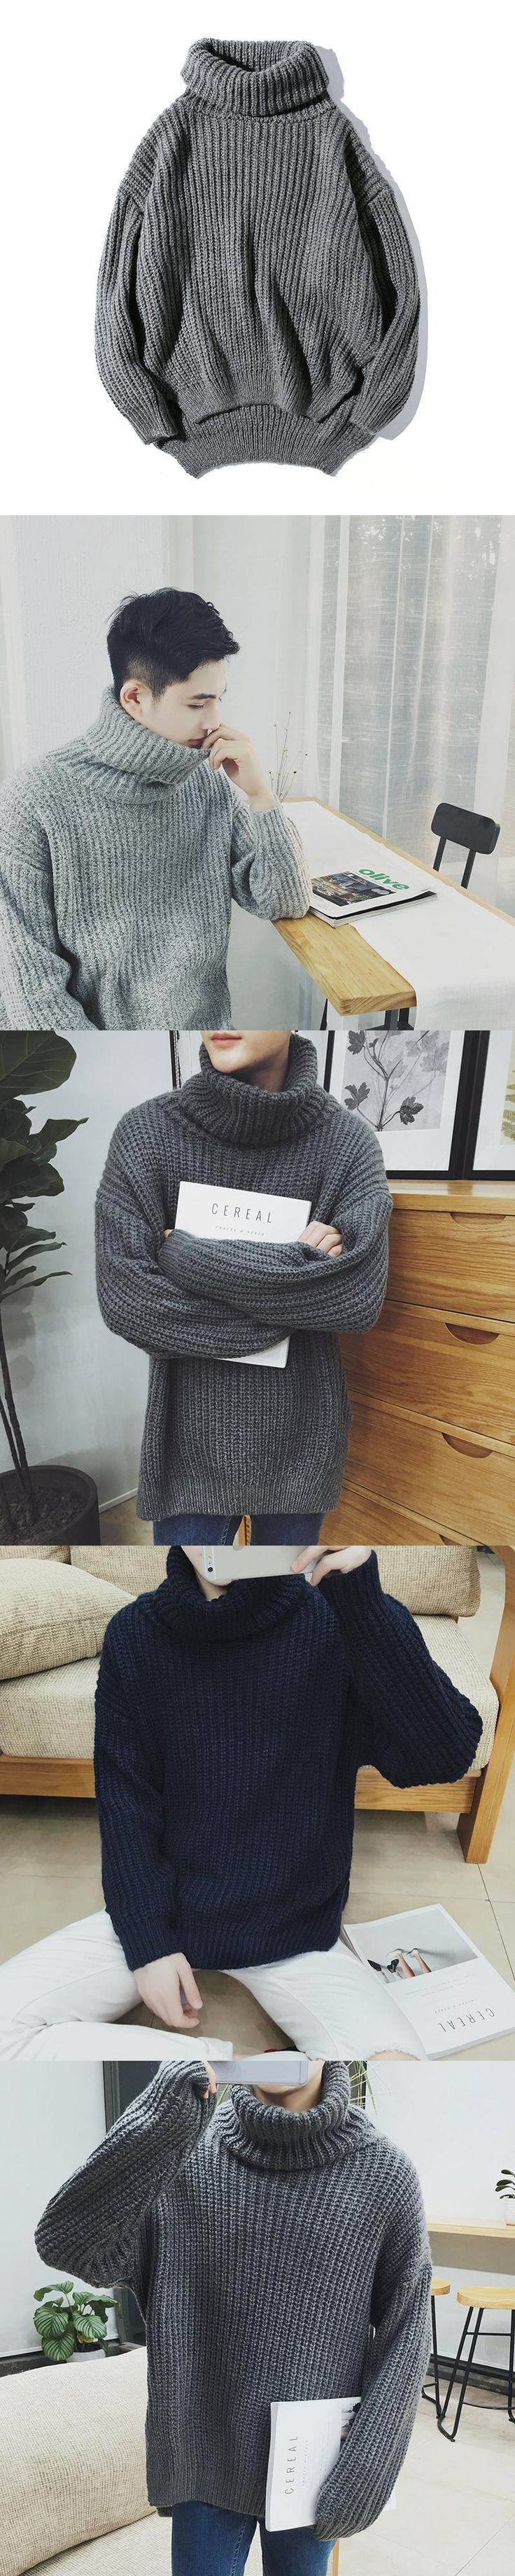 2017 Winter New Pattern Japanese Style Thickening Knitting Solid Color  Can Turn Turtleneck Loose Men Sweater